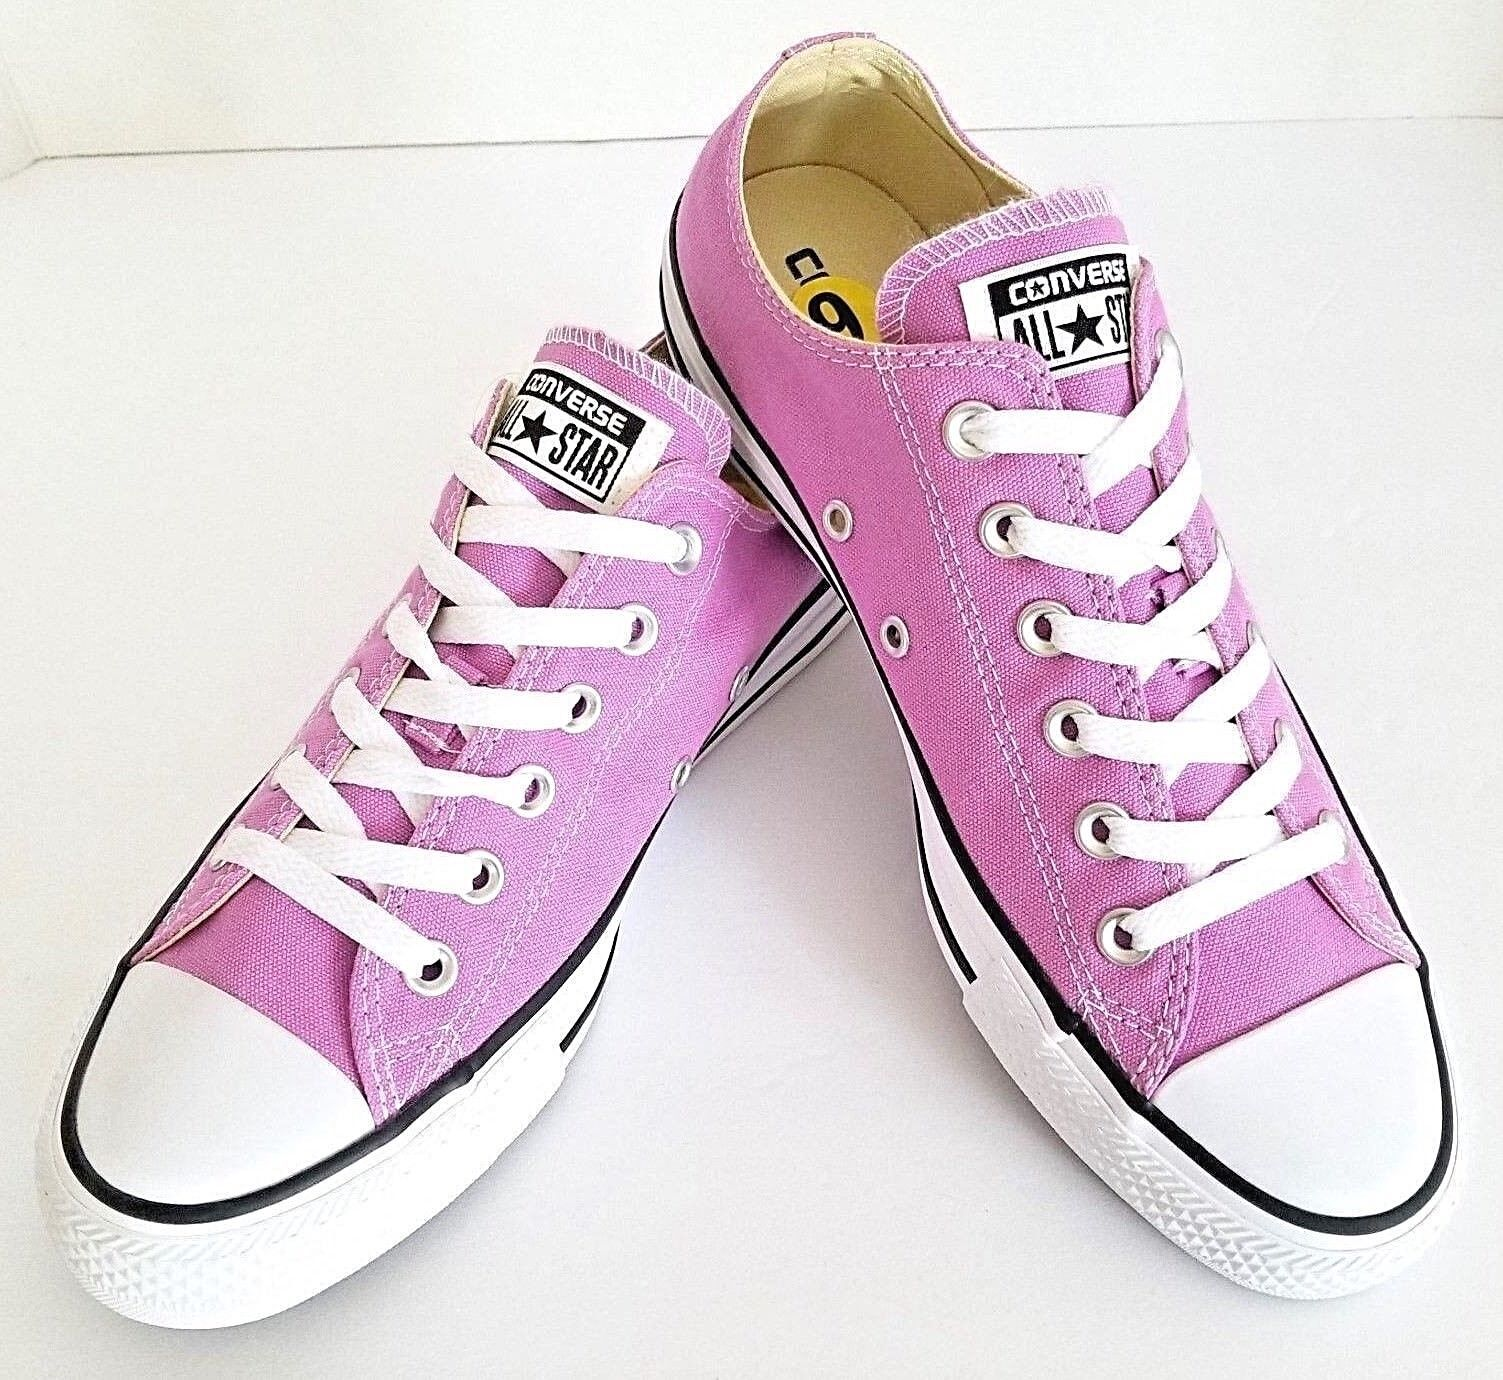 CONVERSE ALL STAR TAYLOR CHUCK TAYLOR STAR LT PURPLE SNEAKERS WOMEN'S SZ 9  Herren 7 NWT 49eac5